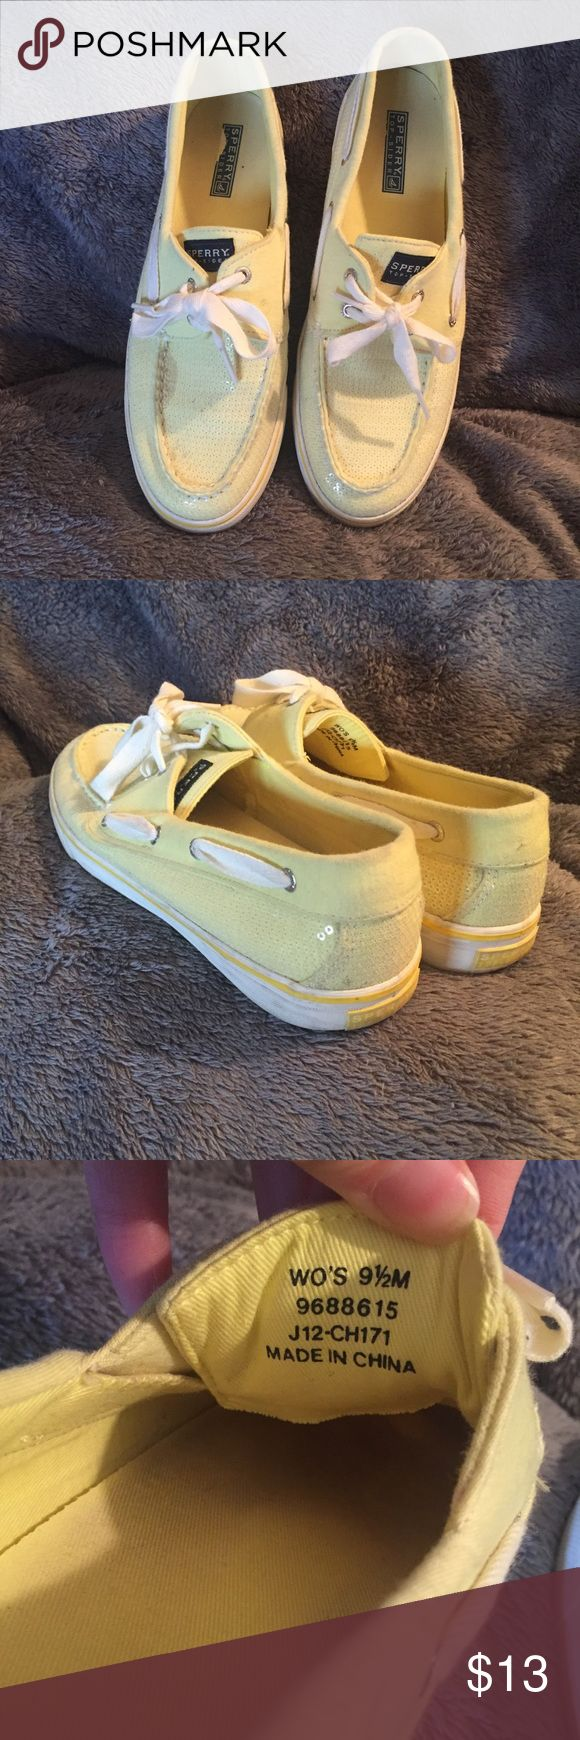 SPERRY sequins boat shoes SPERRY sequin boat shoes -color is a bright yellow/green -canvas/sequins (no leather) -worn a few times, but has some staining, please see picture for details Sperry Top-Sider Shoes Flats & Loafers